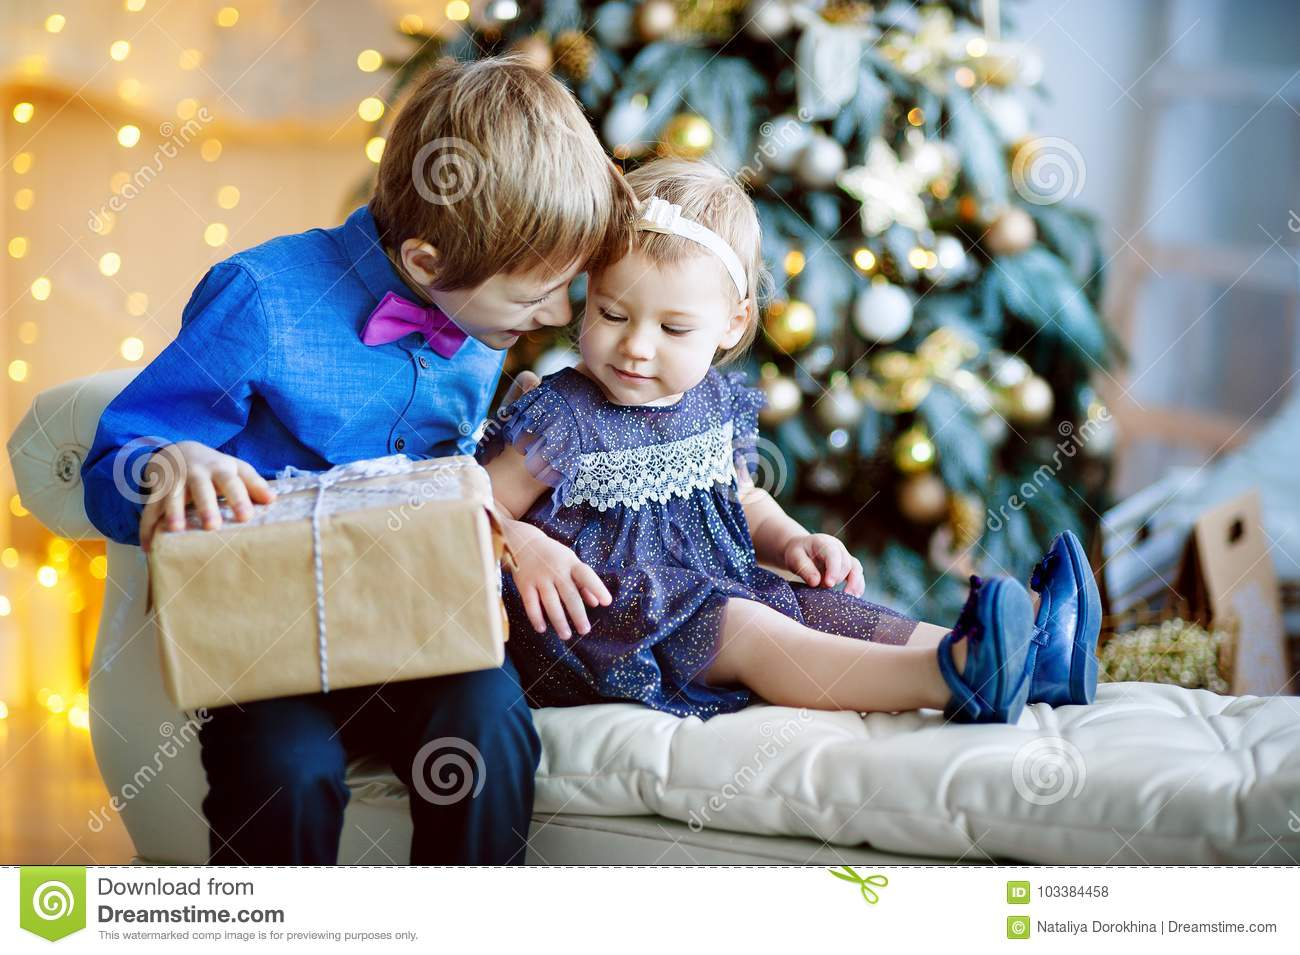 Family on Christmas eve at fireplace. Kids opening Xmas presents. Children under Christmas tree with gift boxes